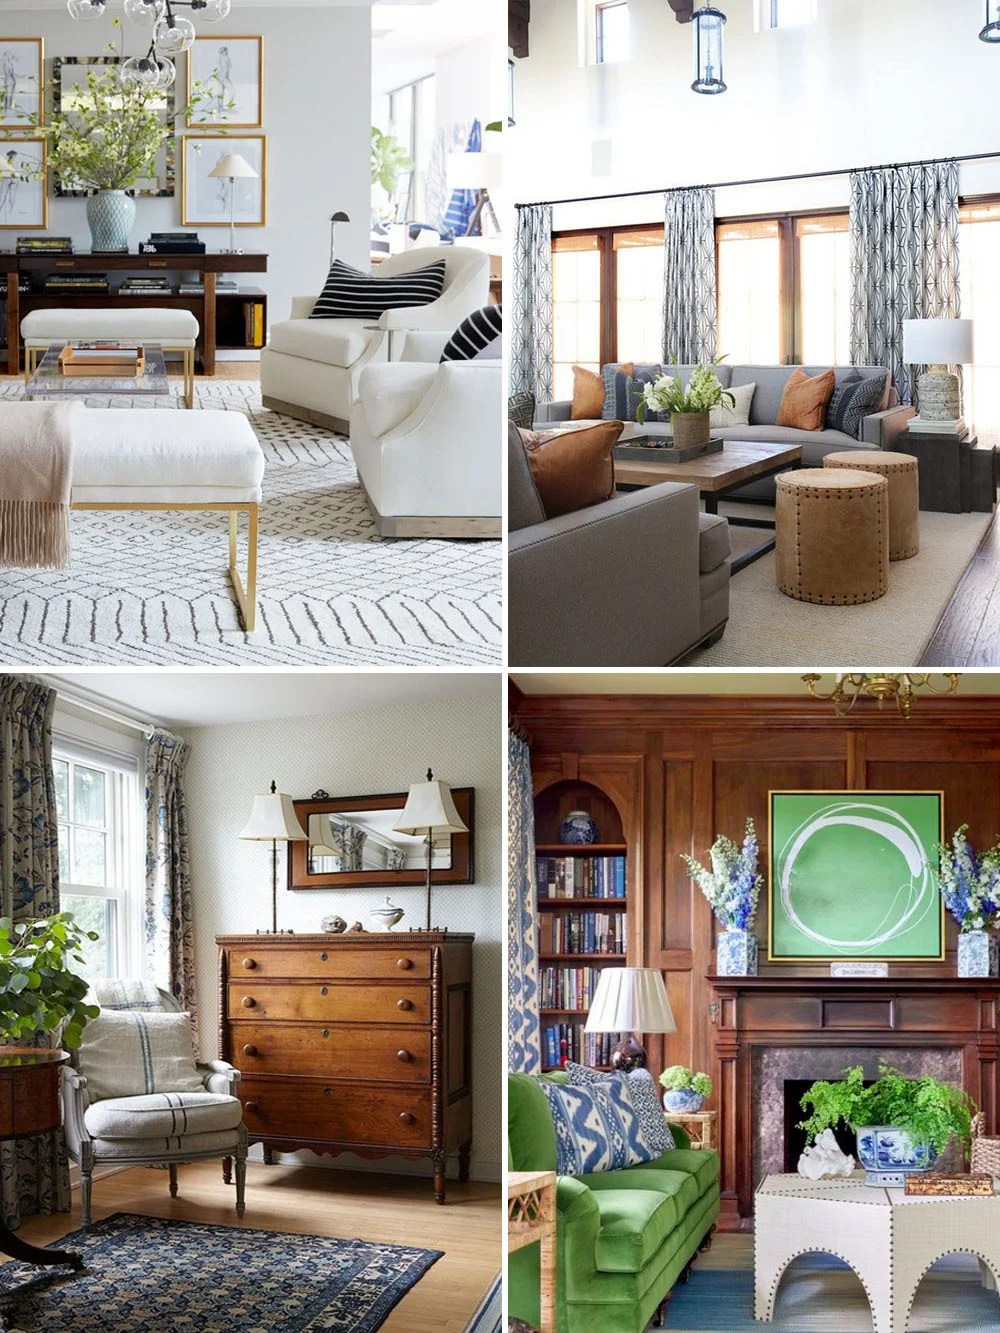 Transitional Design Vs Traditional Design Decor And Style